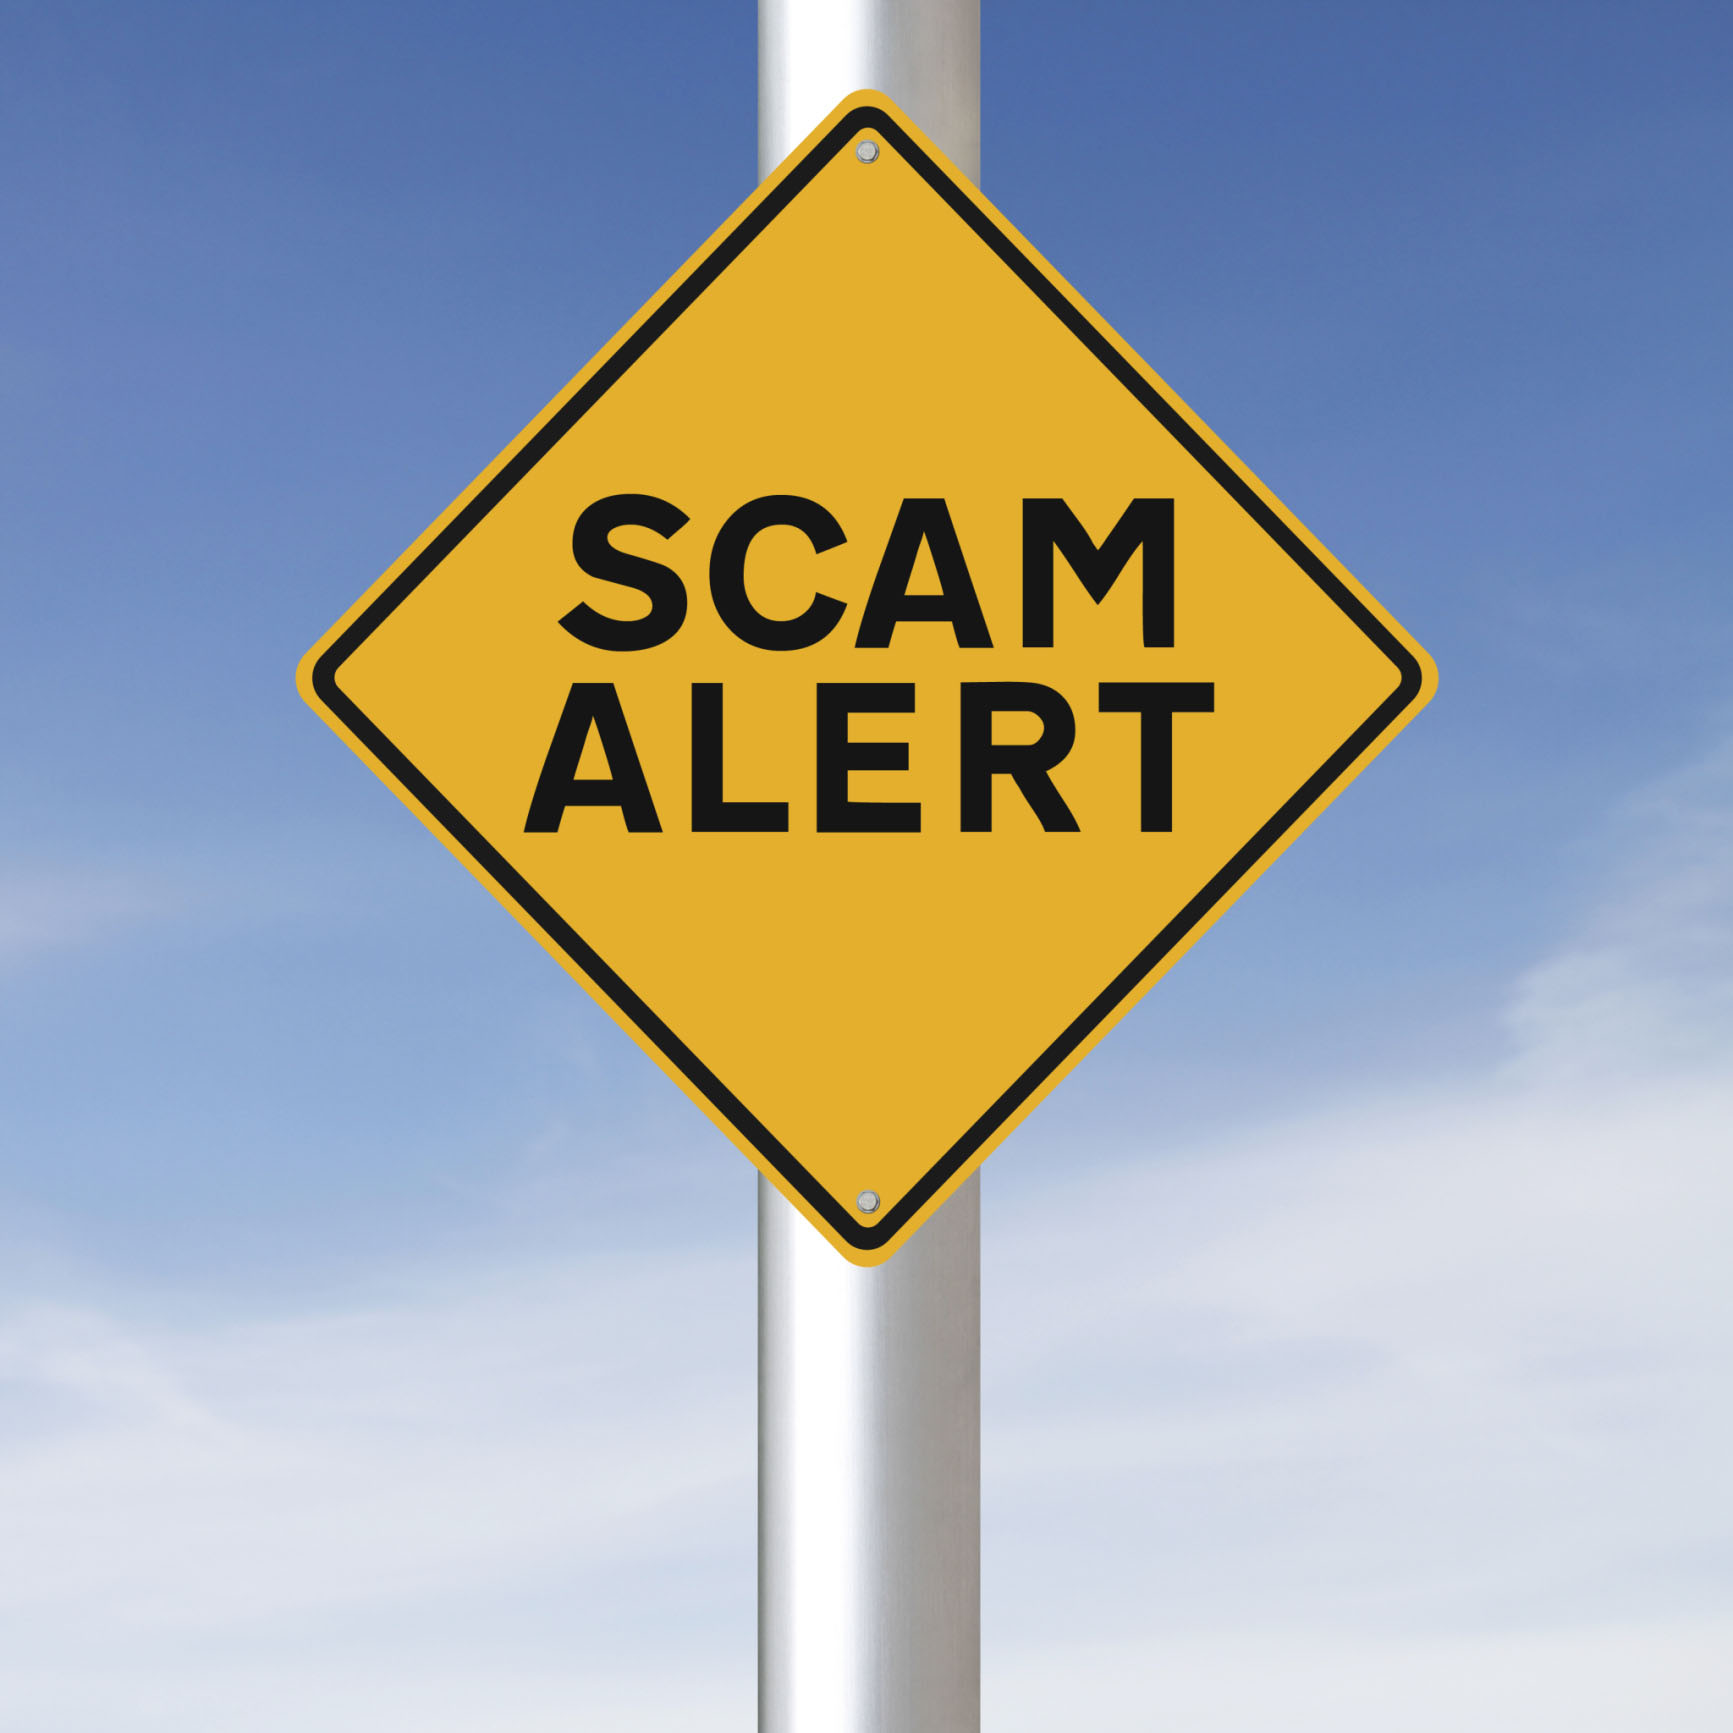 Photo of a scam alert sign, used for a blog post about avoiding precious metal scams by using a reputable recycler like Specialty Metals. Credit: amanalang/iStock/Thinkstock.